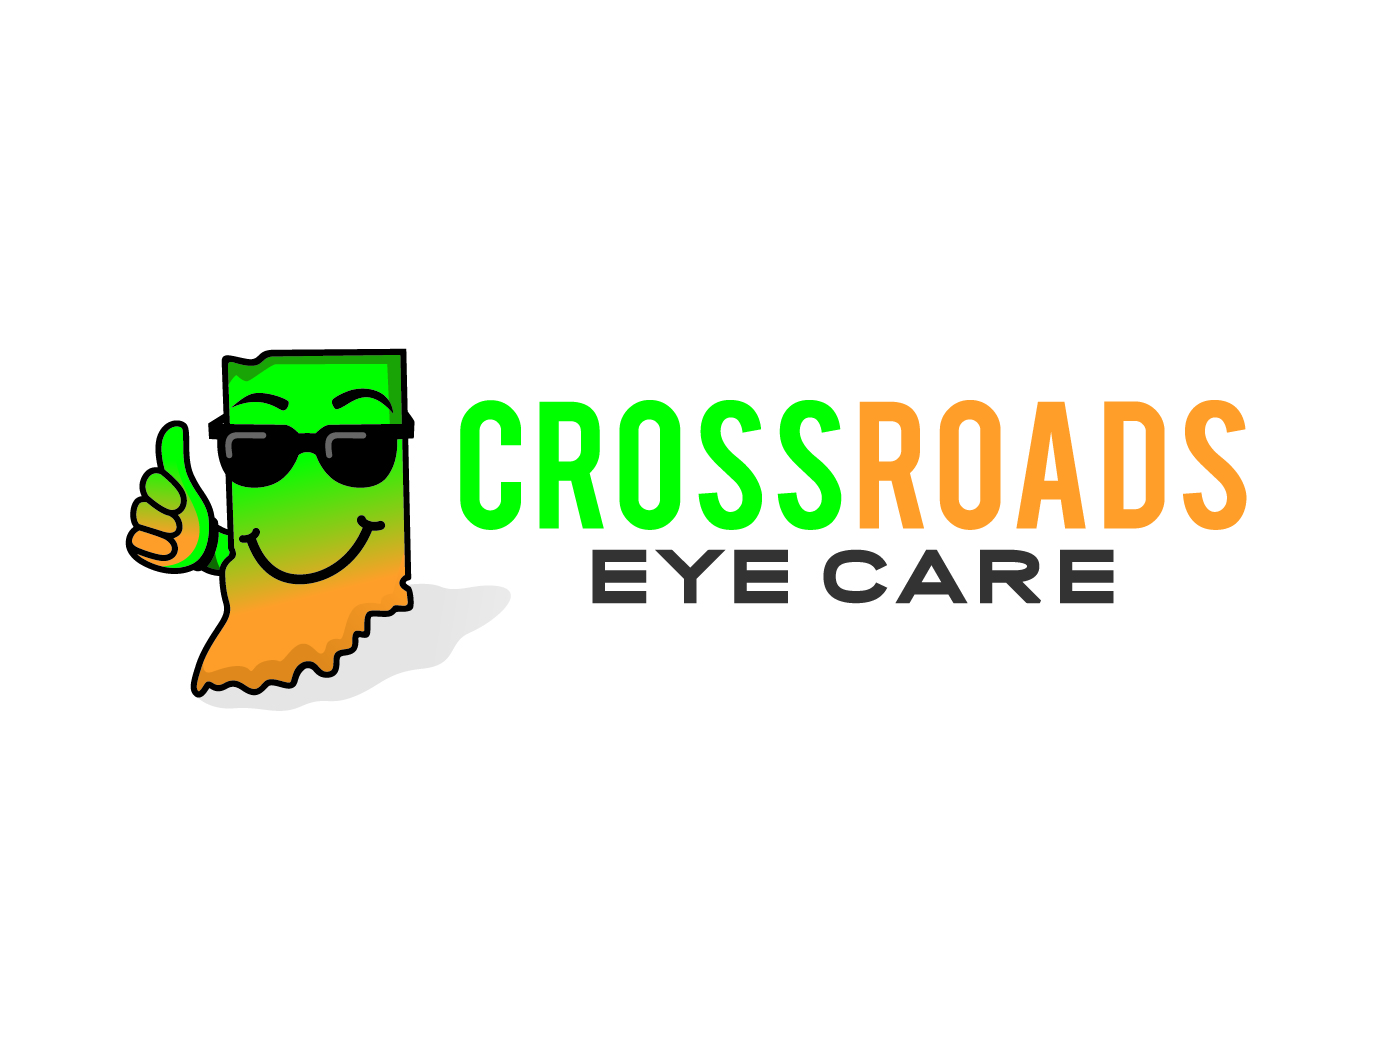 Crossroads Eye Care_Final Files_10082016